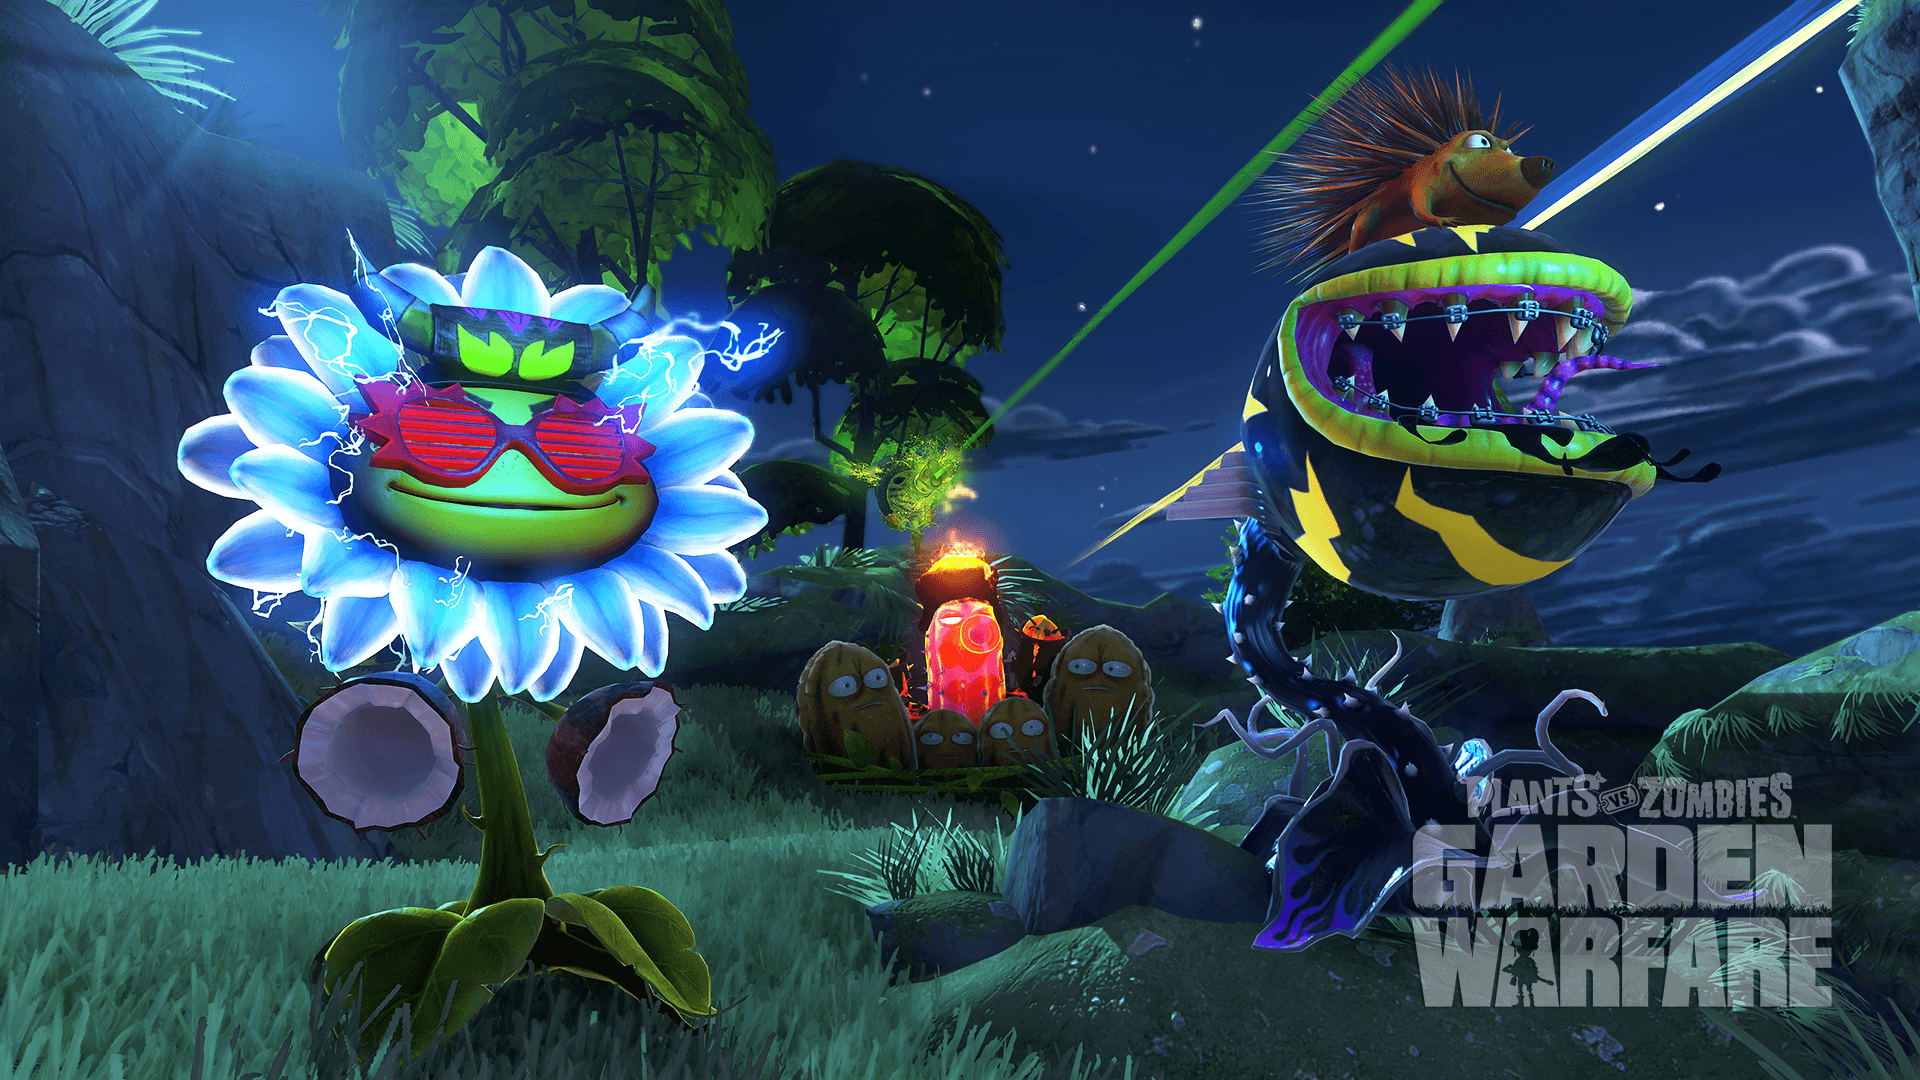 Plants Vs Zombies Garden Warfare Wallpapers Wallpaper Cave